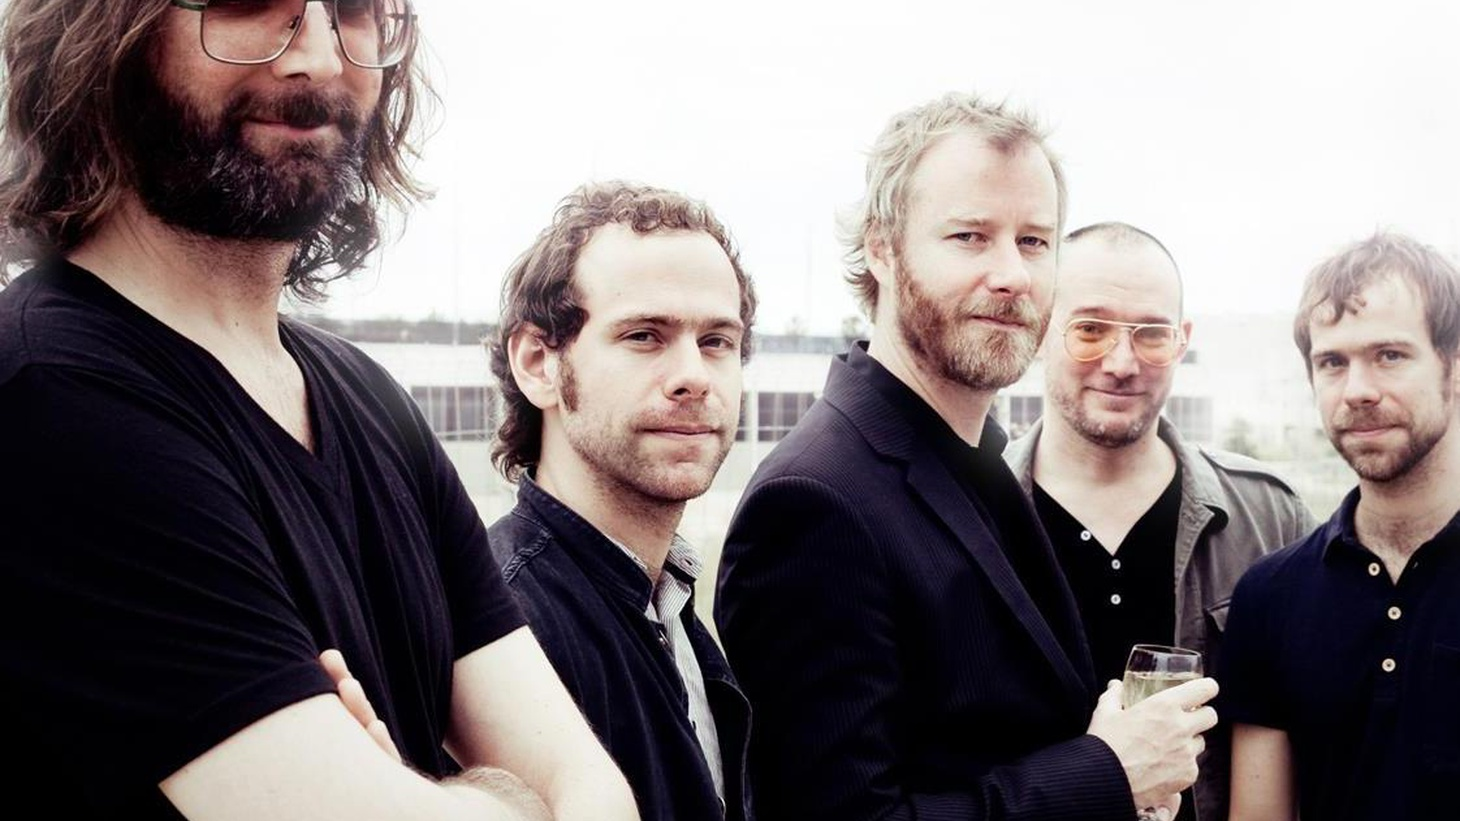 One of indie rock's most reliably great bands, The National, played a special stripped down set for us in 2013.